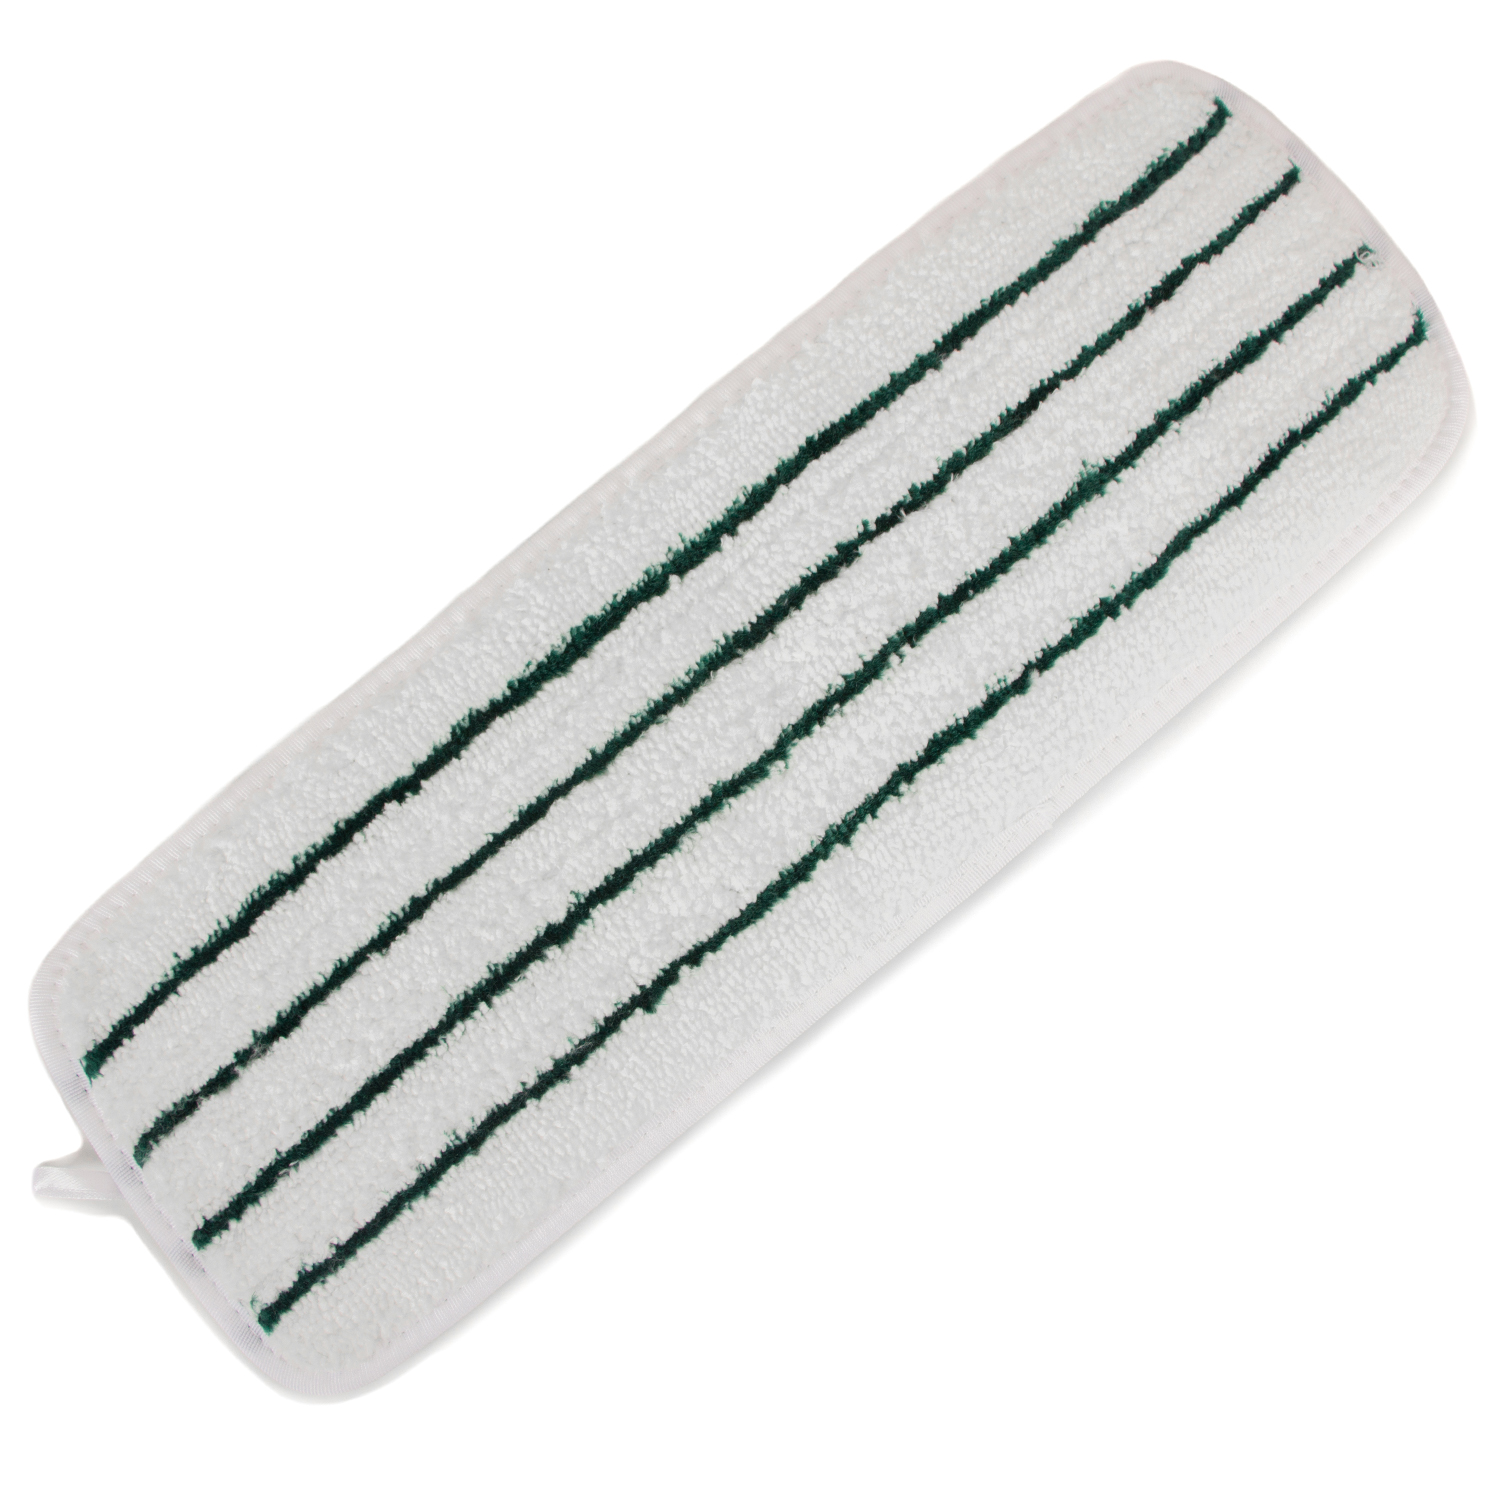 White Striped Microfiber Wet Mop Pad 18 Quot 3 Pack Zwipes Home